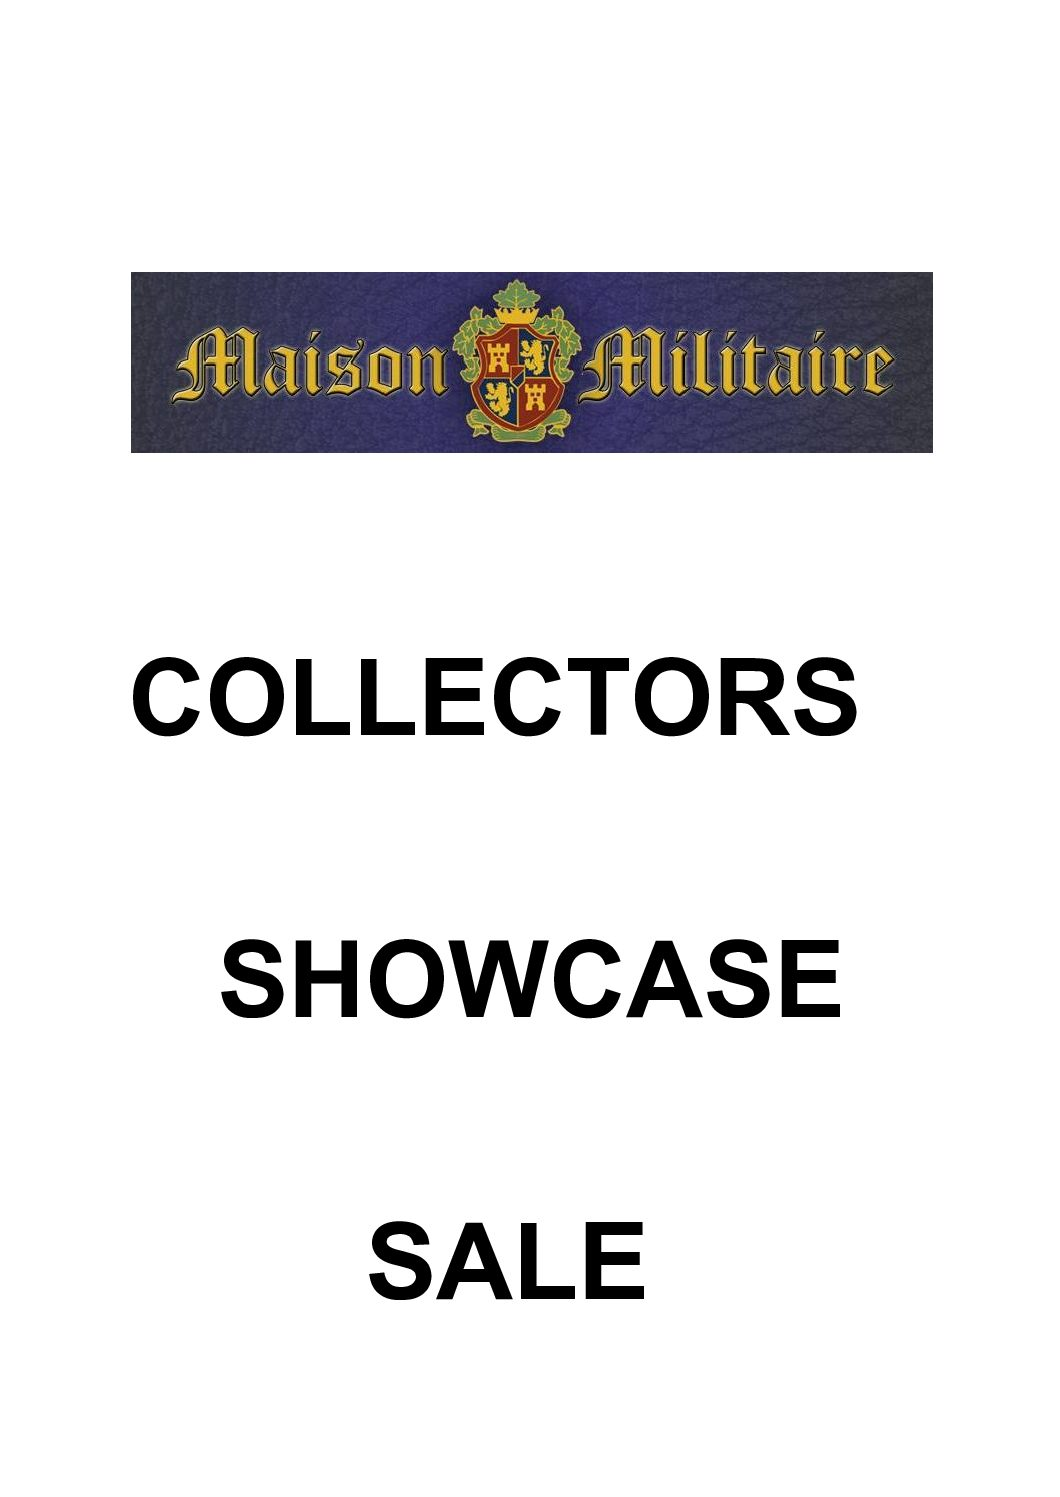 Collectors Showcase Offers